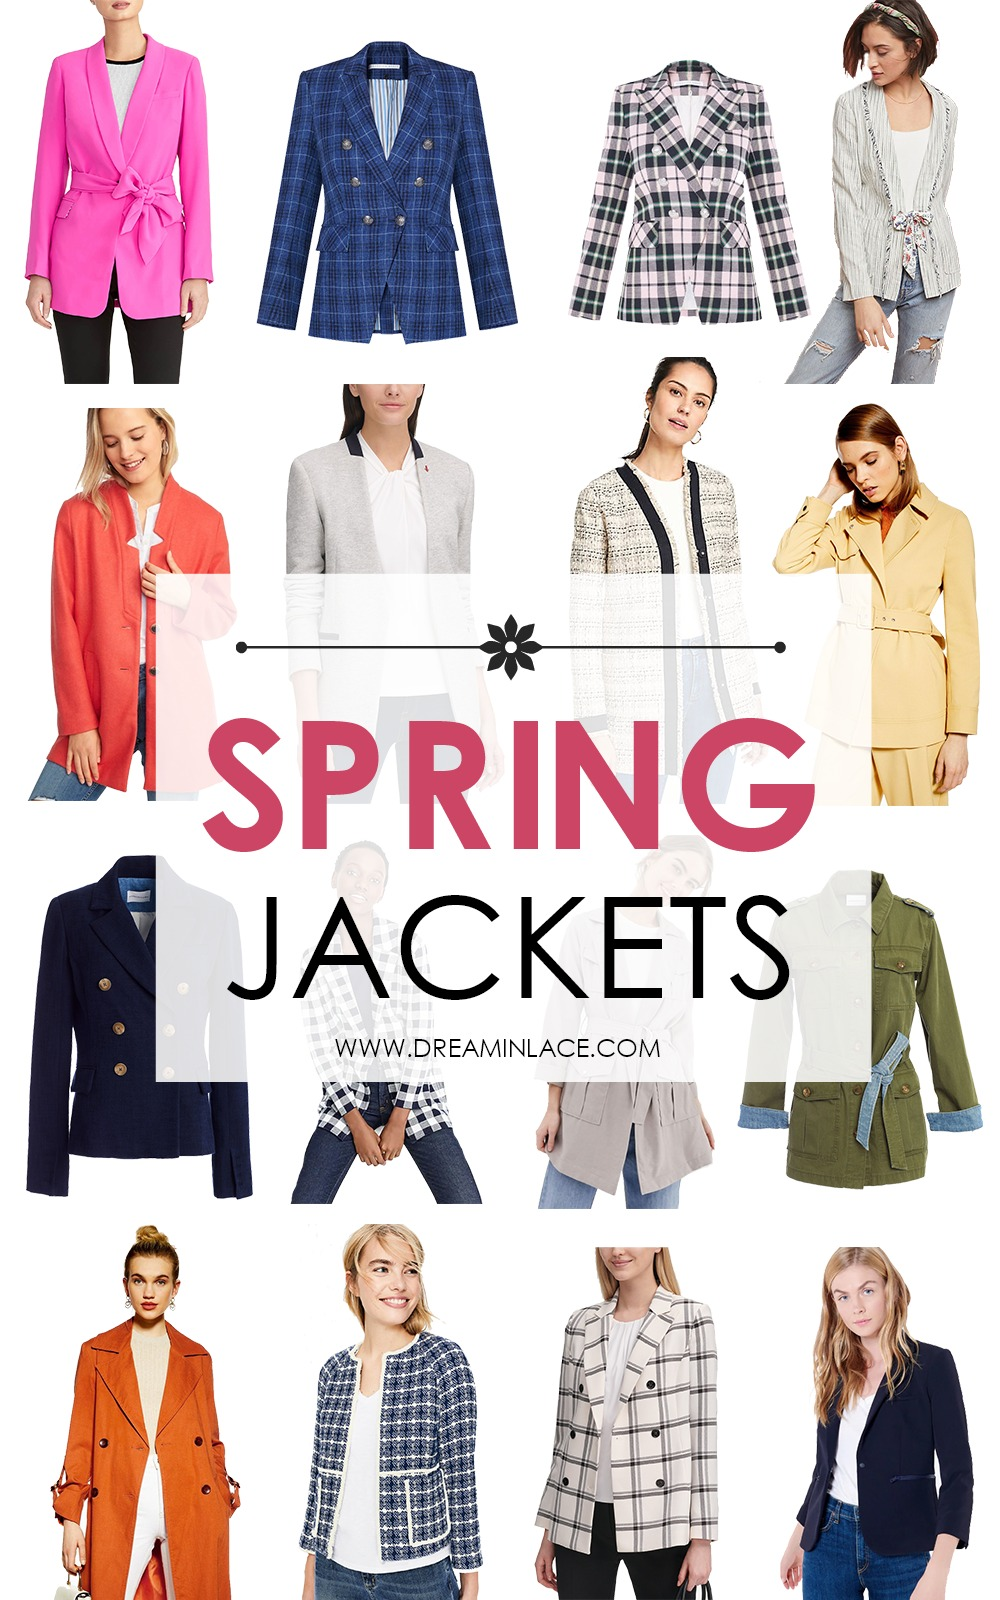 Stylish Spring Jackets on My Radar I DreaminLace.com #SpringFashion #WorkWear #Fashionista #OutfitIdeas